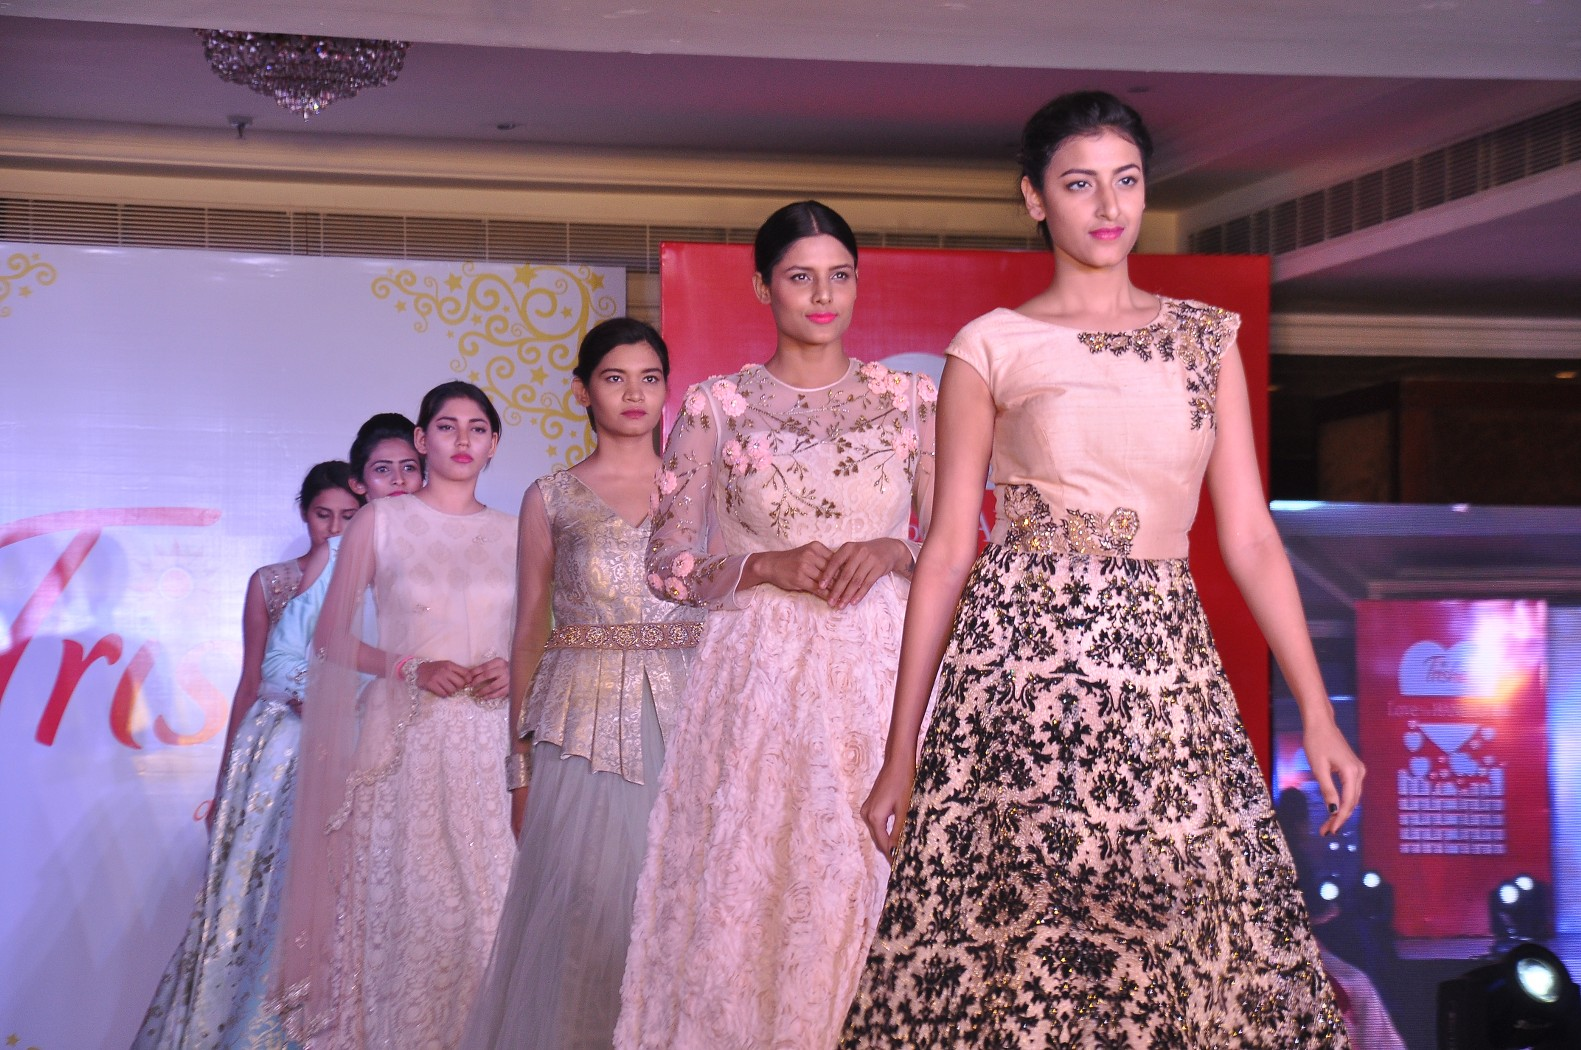 Celebs and Models Dazzle In Elegant Outfit | Love For Handloom Love For Handloom Celebs and Models Dazzle In Elegant Outfit | Love For Handloom Praneetha Love For Handloom 186